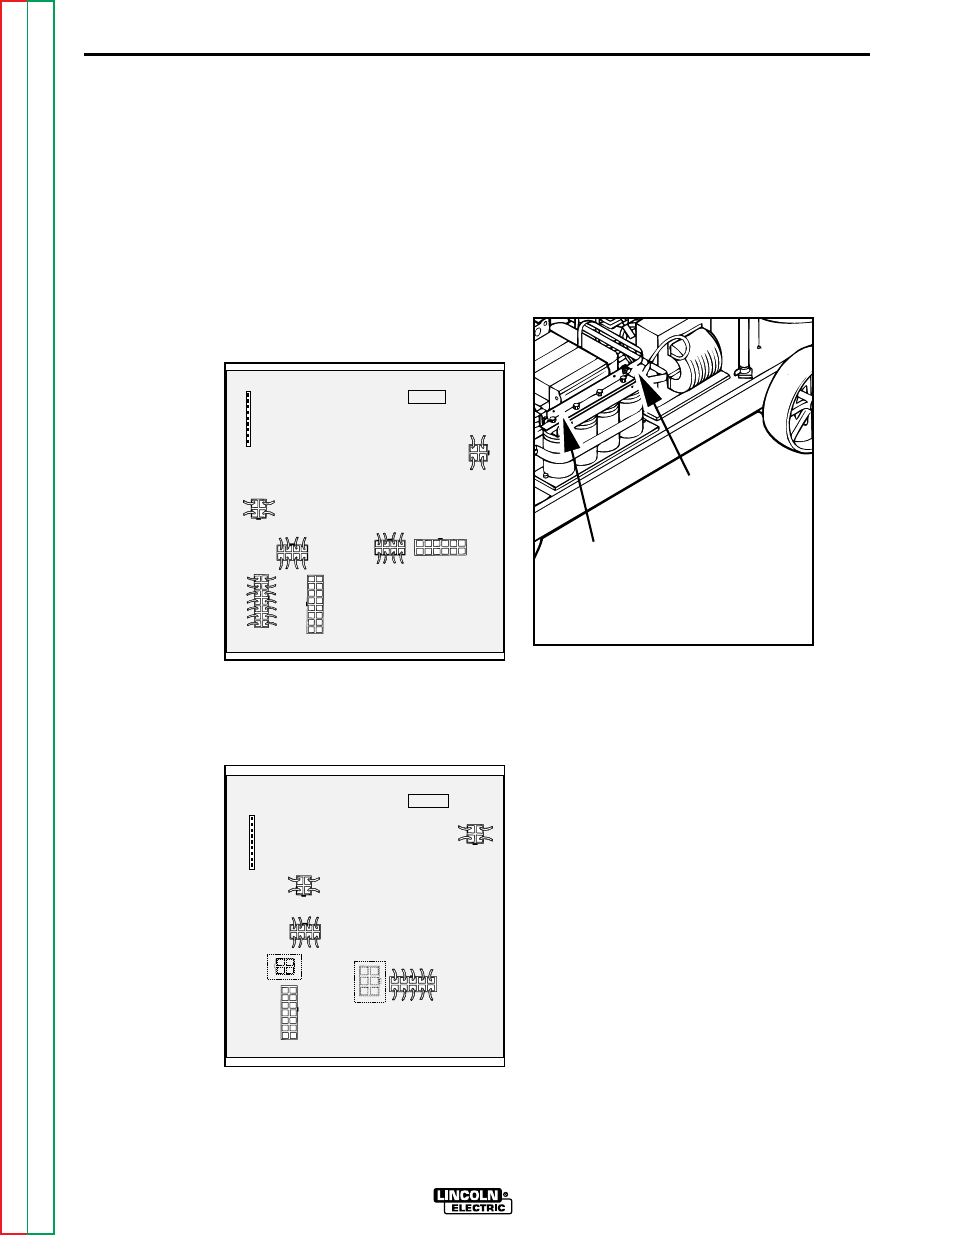 Troubleshooting Repair Test Procedure Static Scr Rectifier Idealarc 250 Lincoln Wiring Diagram Assembly Electric Sp Manuel Dutilisation Page 67 113